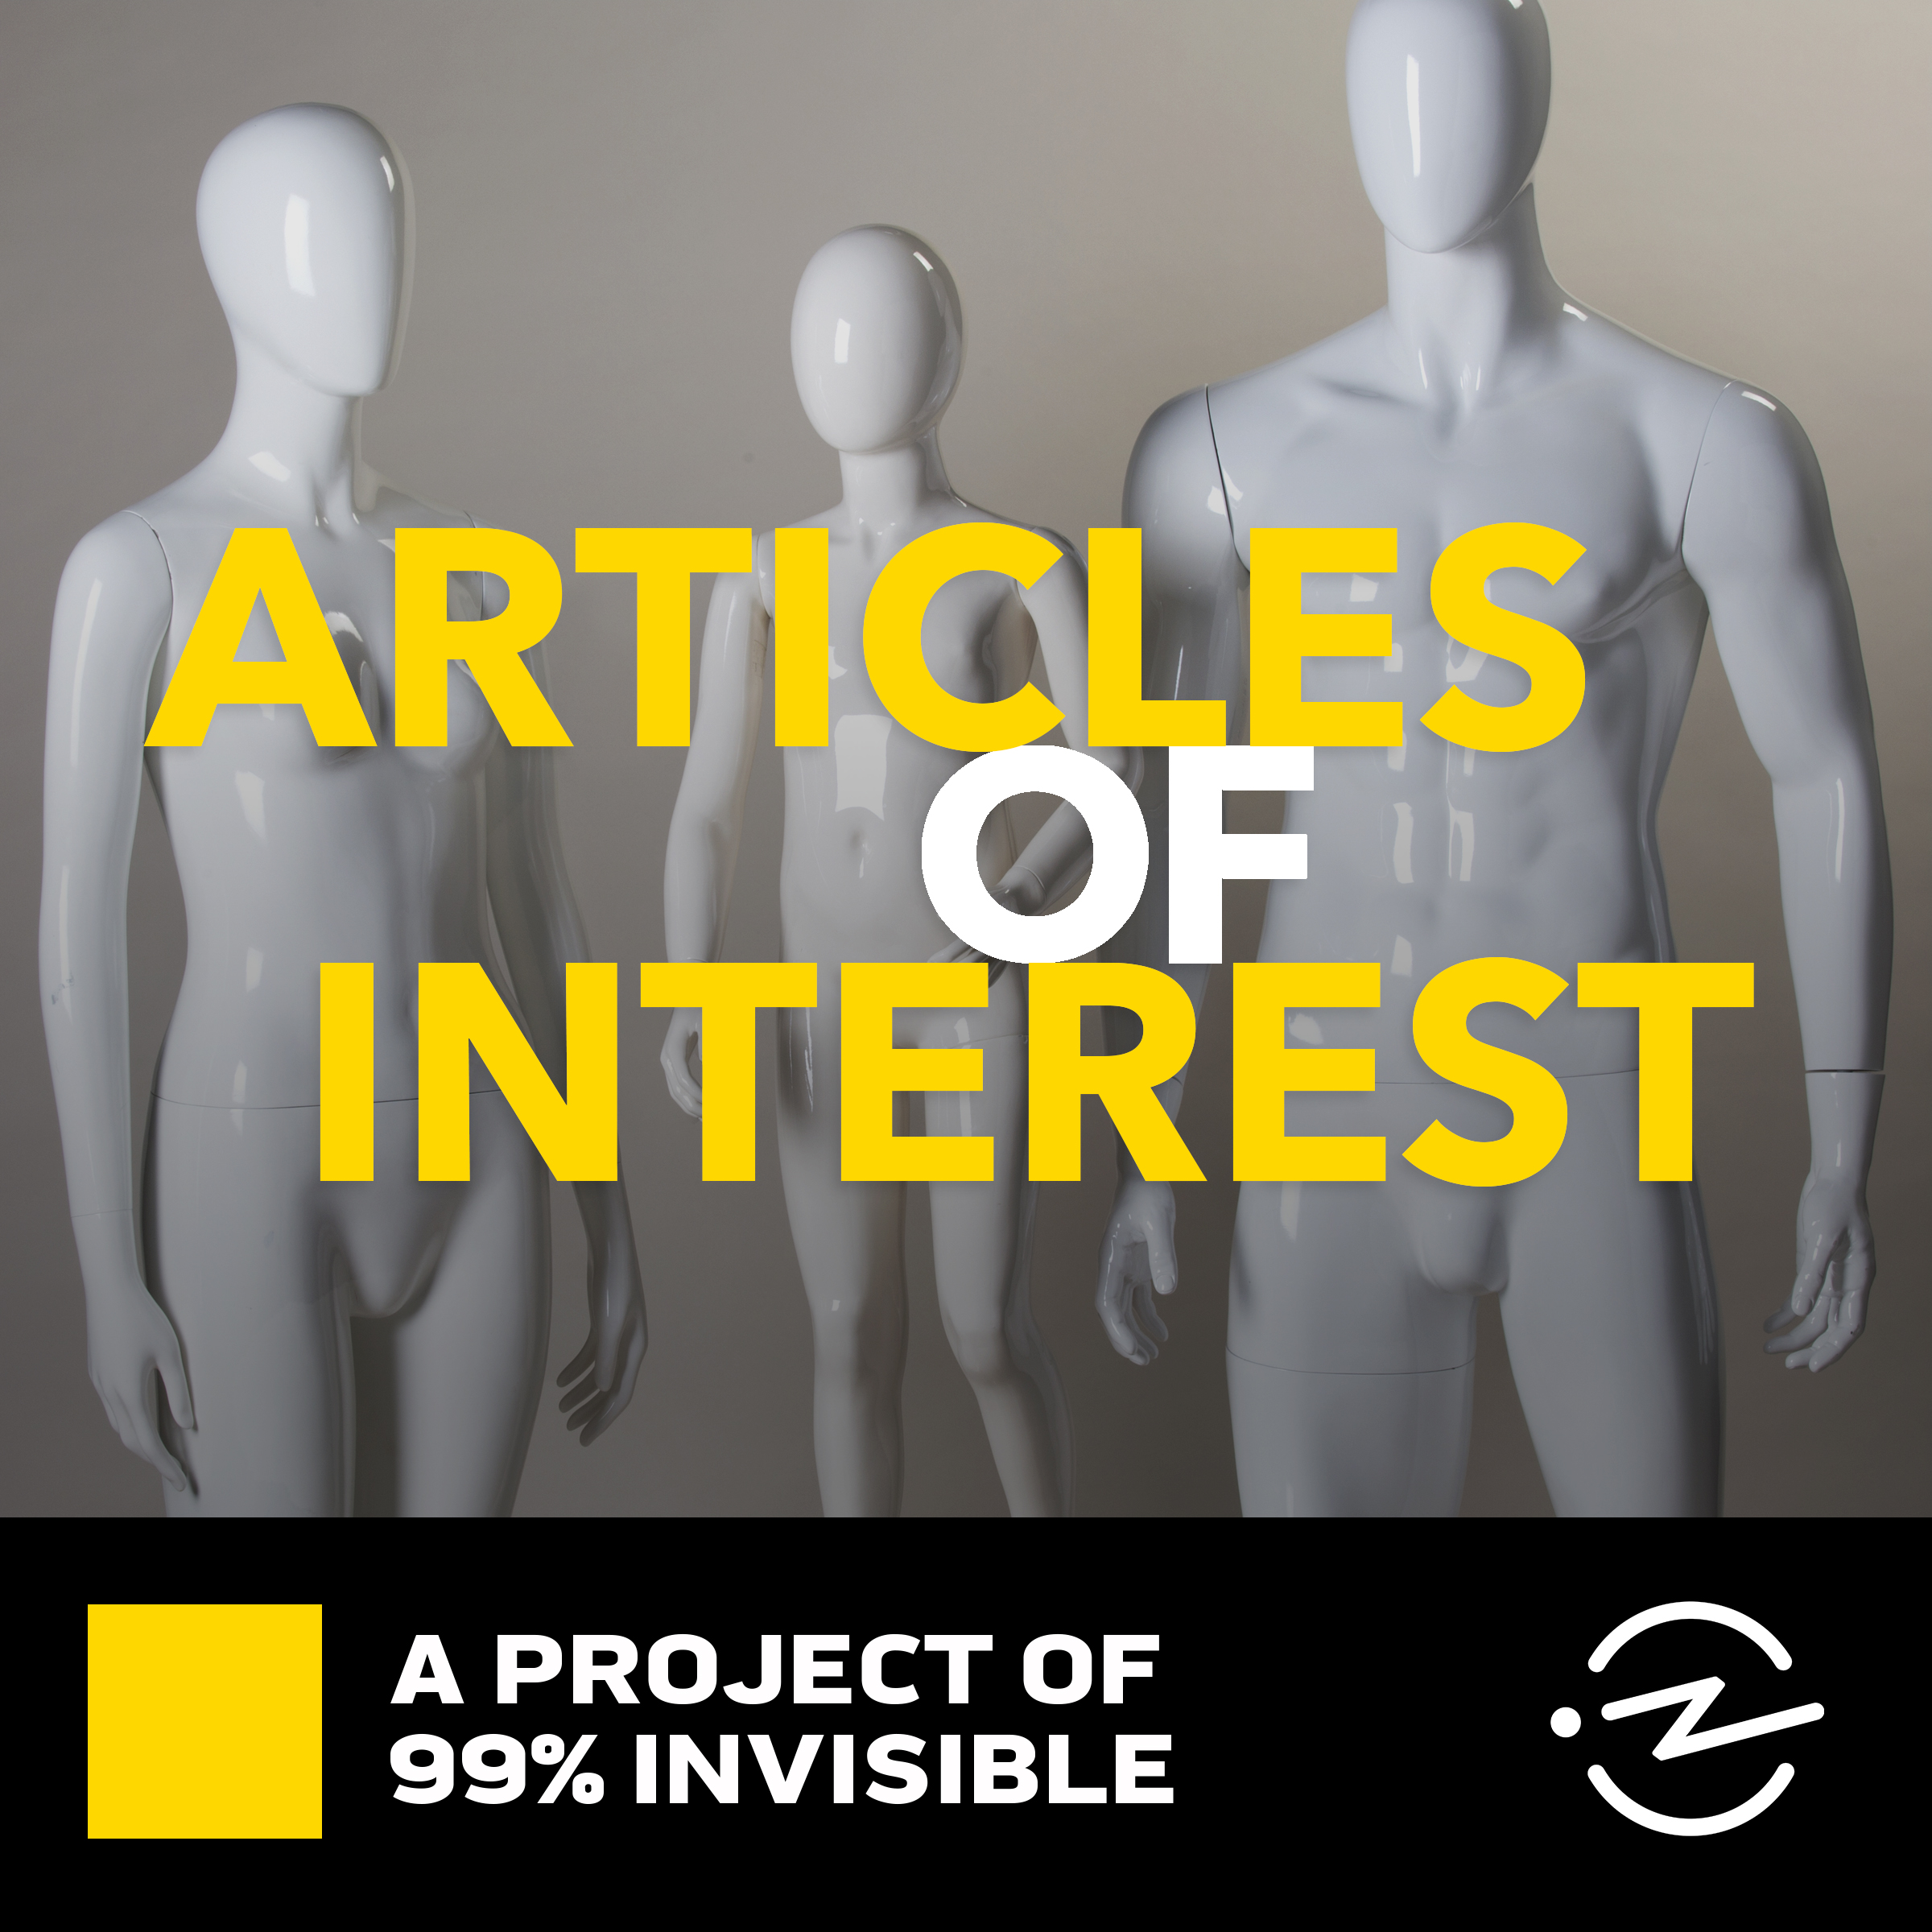 """Articles of Interest"" theme by Sasami Ashworth"